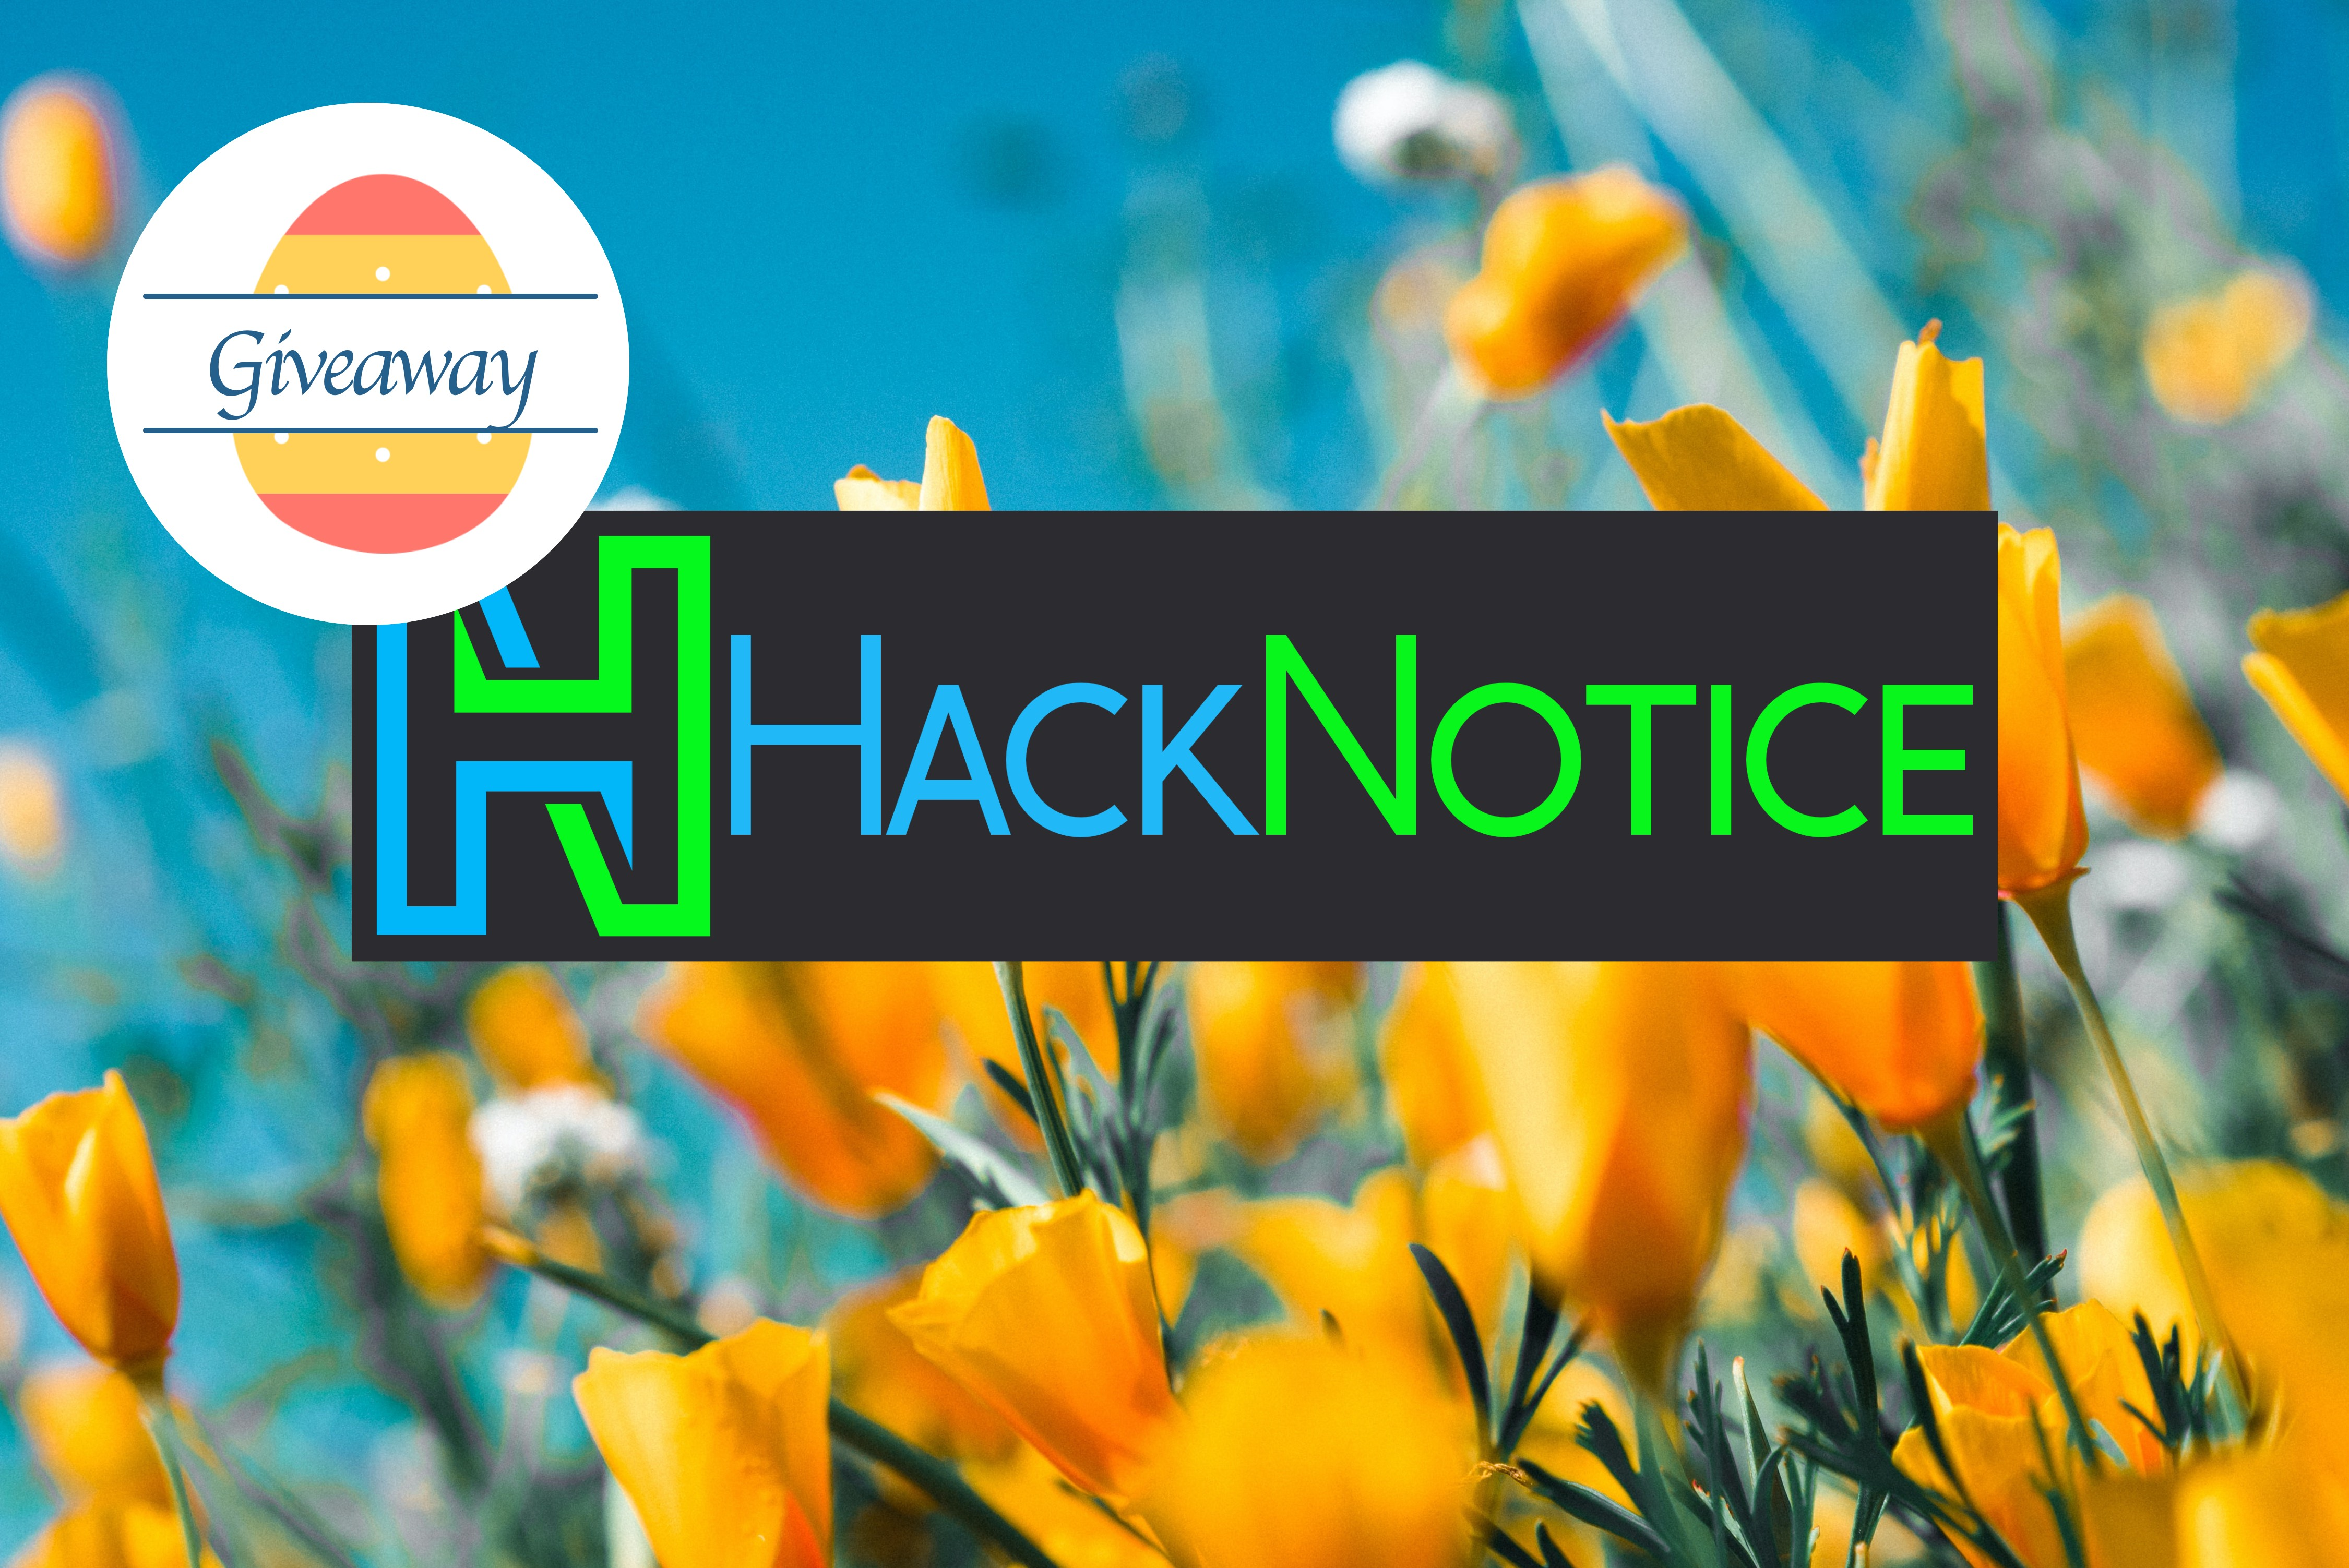 Enter to win a year of HackNotice Premium Service  Entrants must be active members of the HackNotice newsletter and have an active HackNotice personal account to be eligible to win. Giveaway Image